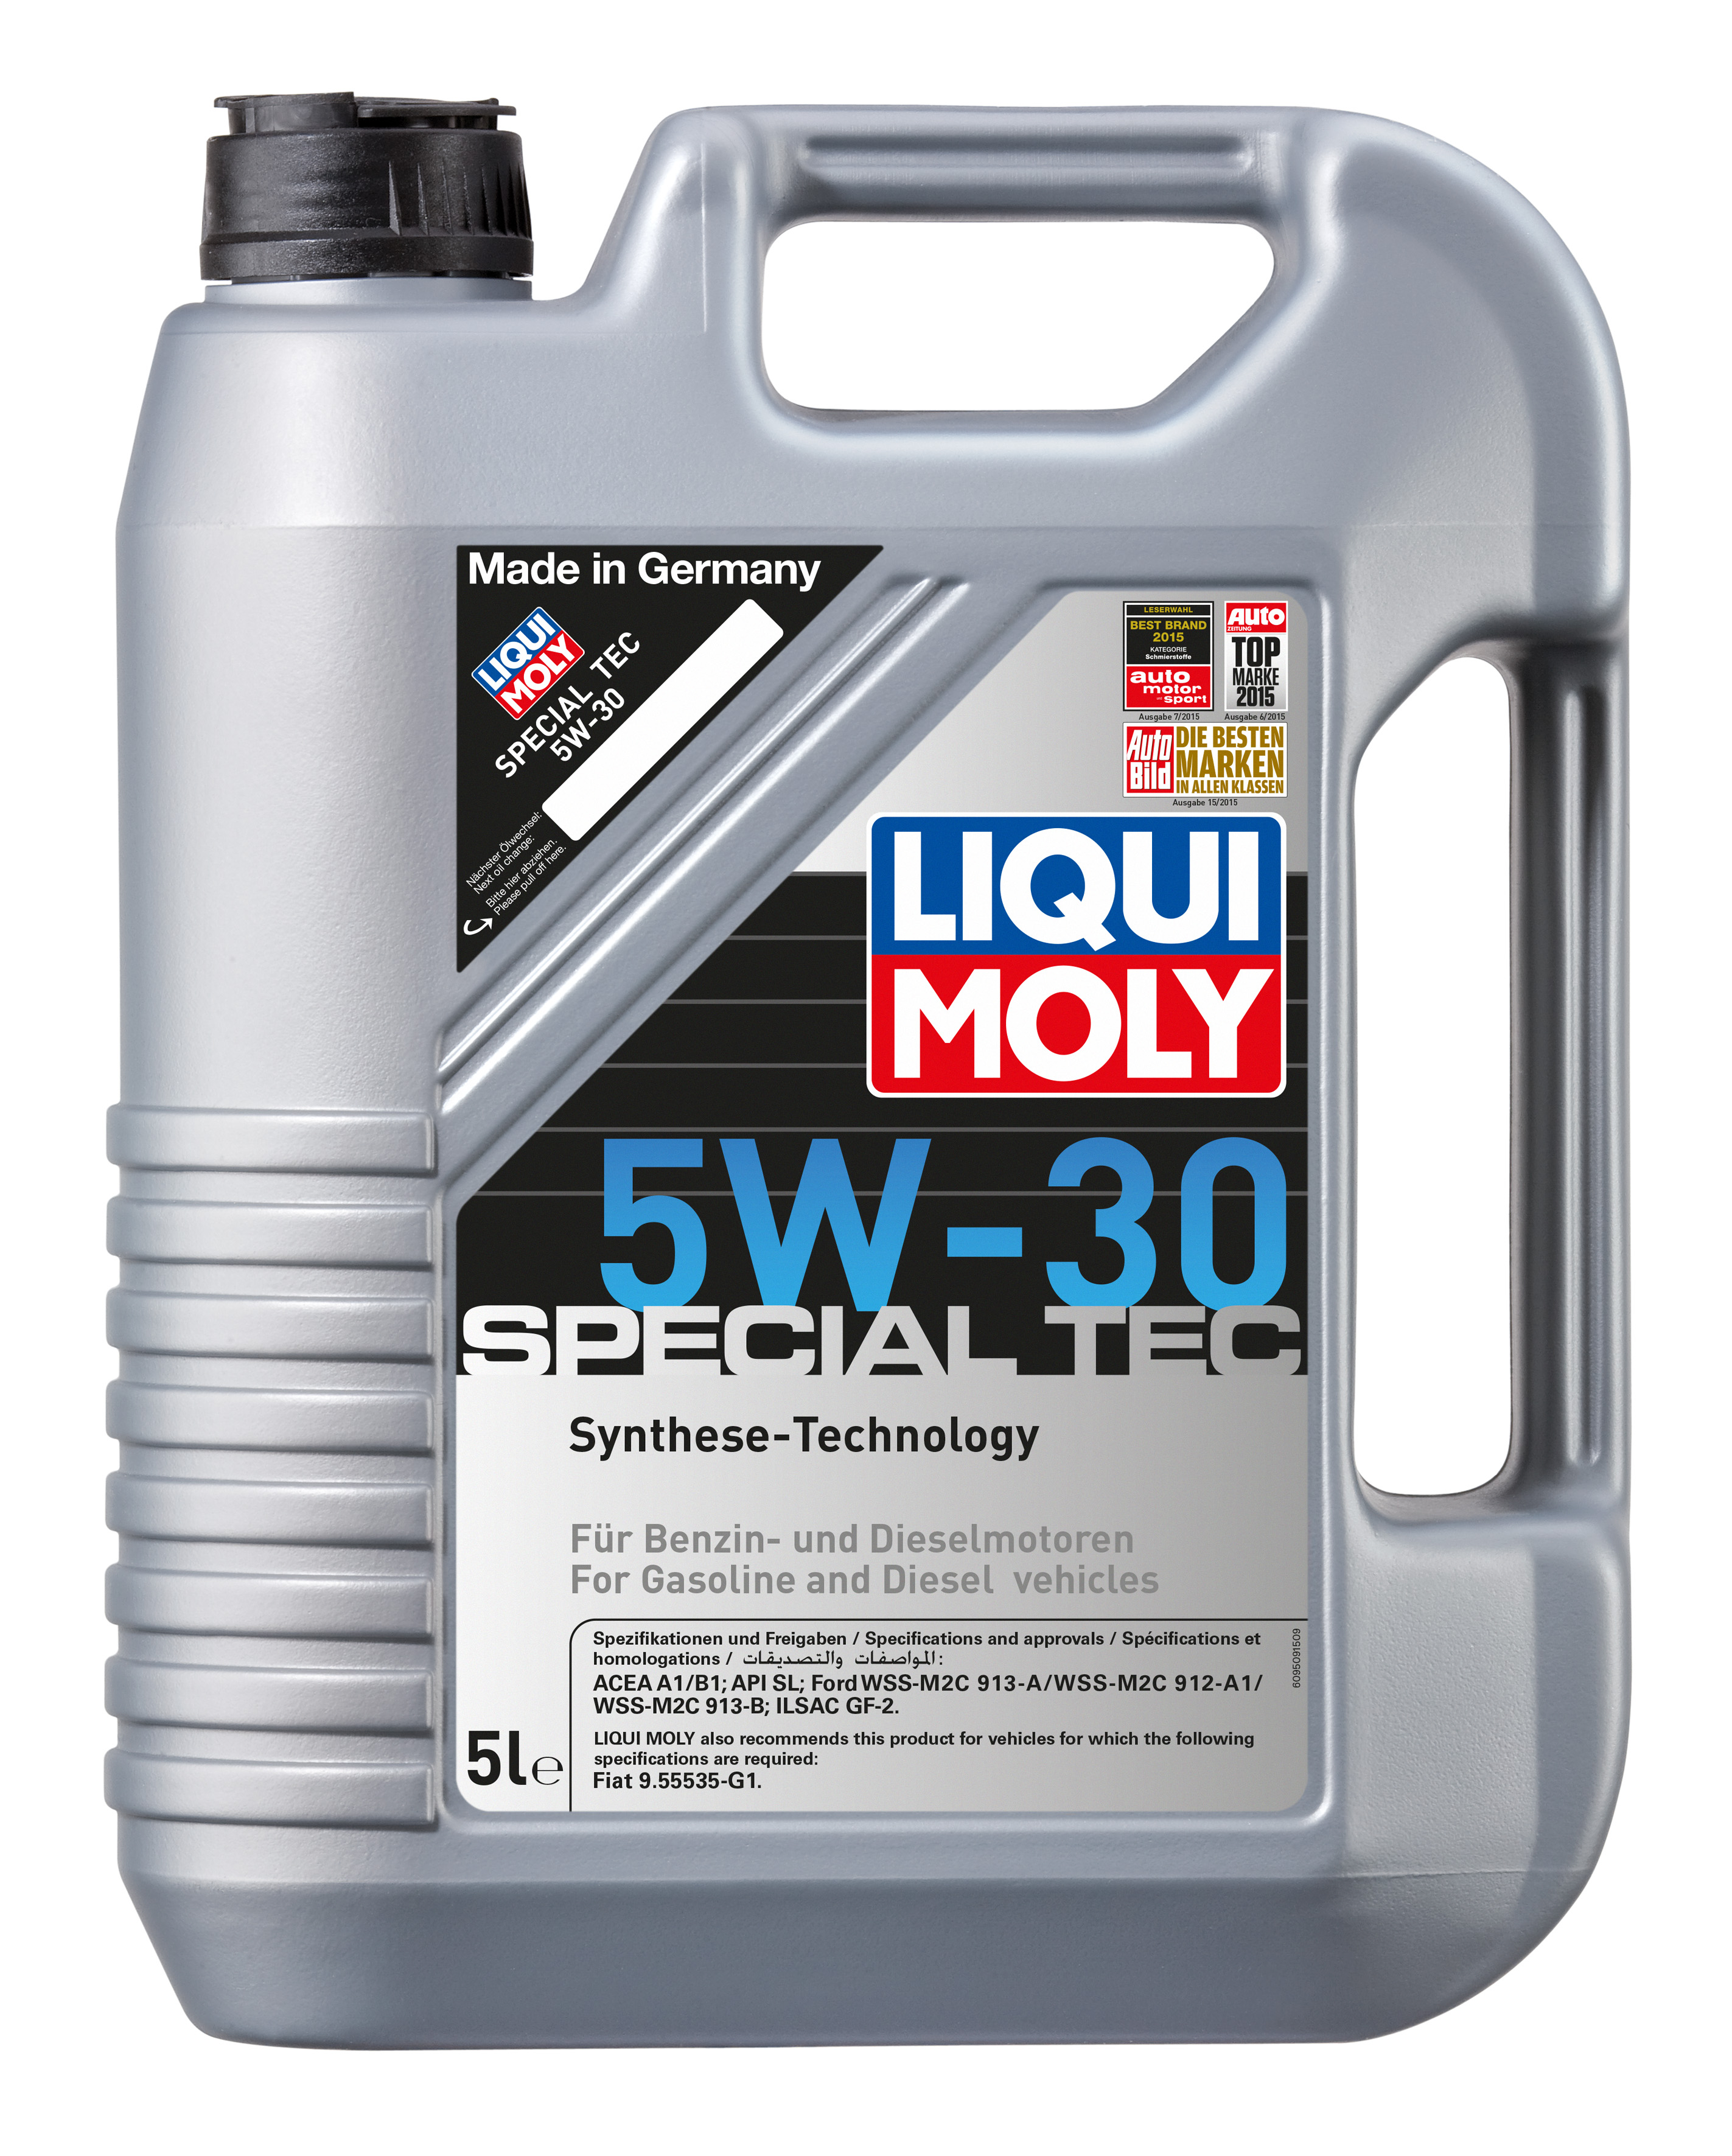 liqui moly 5w30 special tec fully synthetic oil 5l. Black Bedroom Furniture Sets. Home Design Ideas